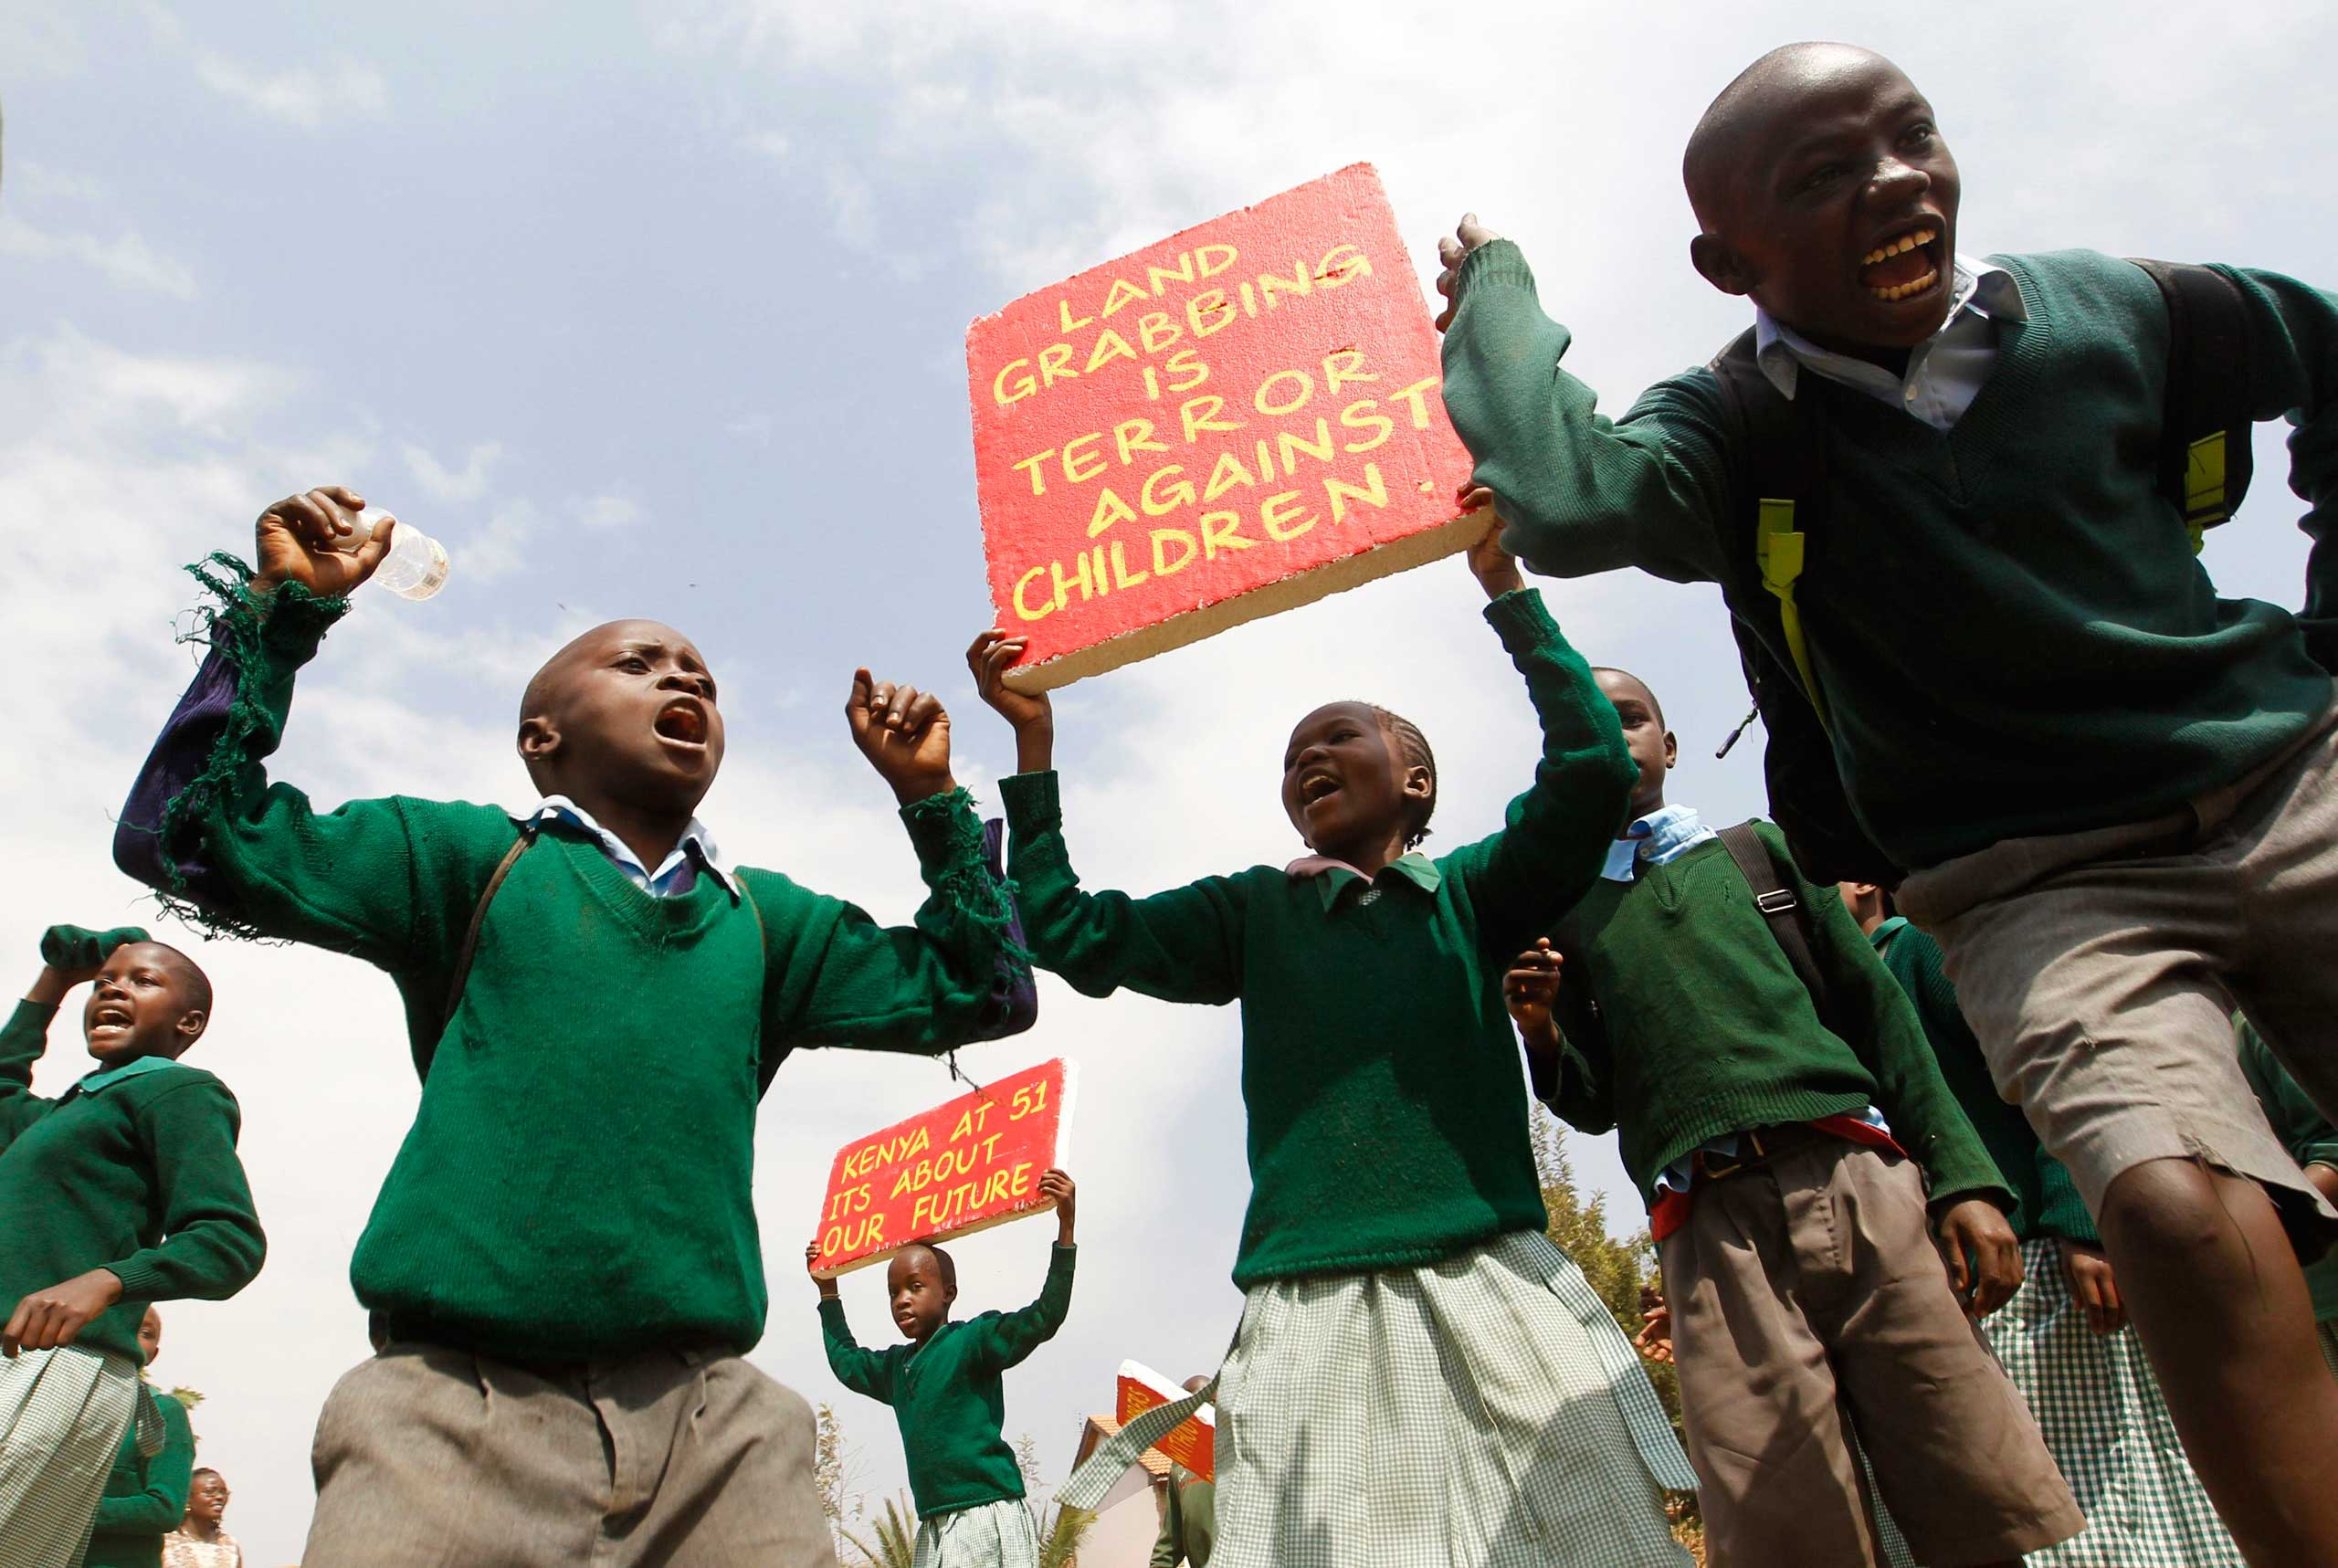 Students from Langata Primary School hold placards as they protest against a perimeter wall illegally erected by a private developer around their school playground in Kenya's capital Nairobi, Jan. 19, 2015.